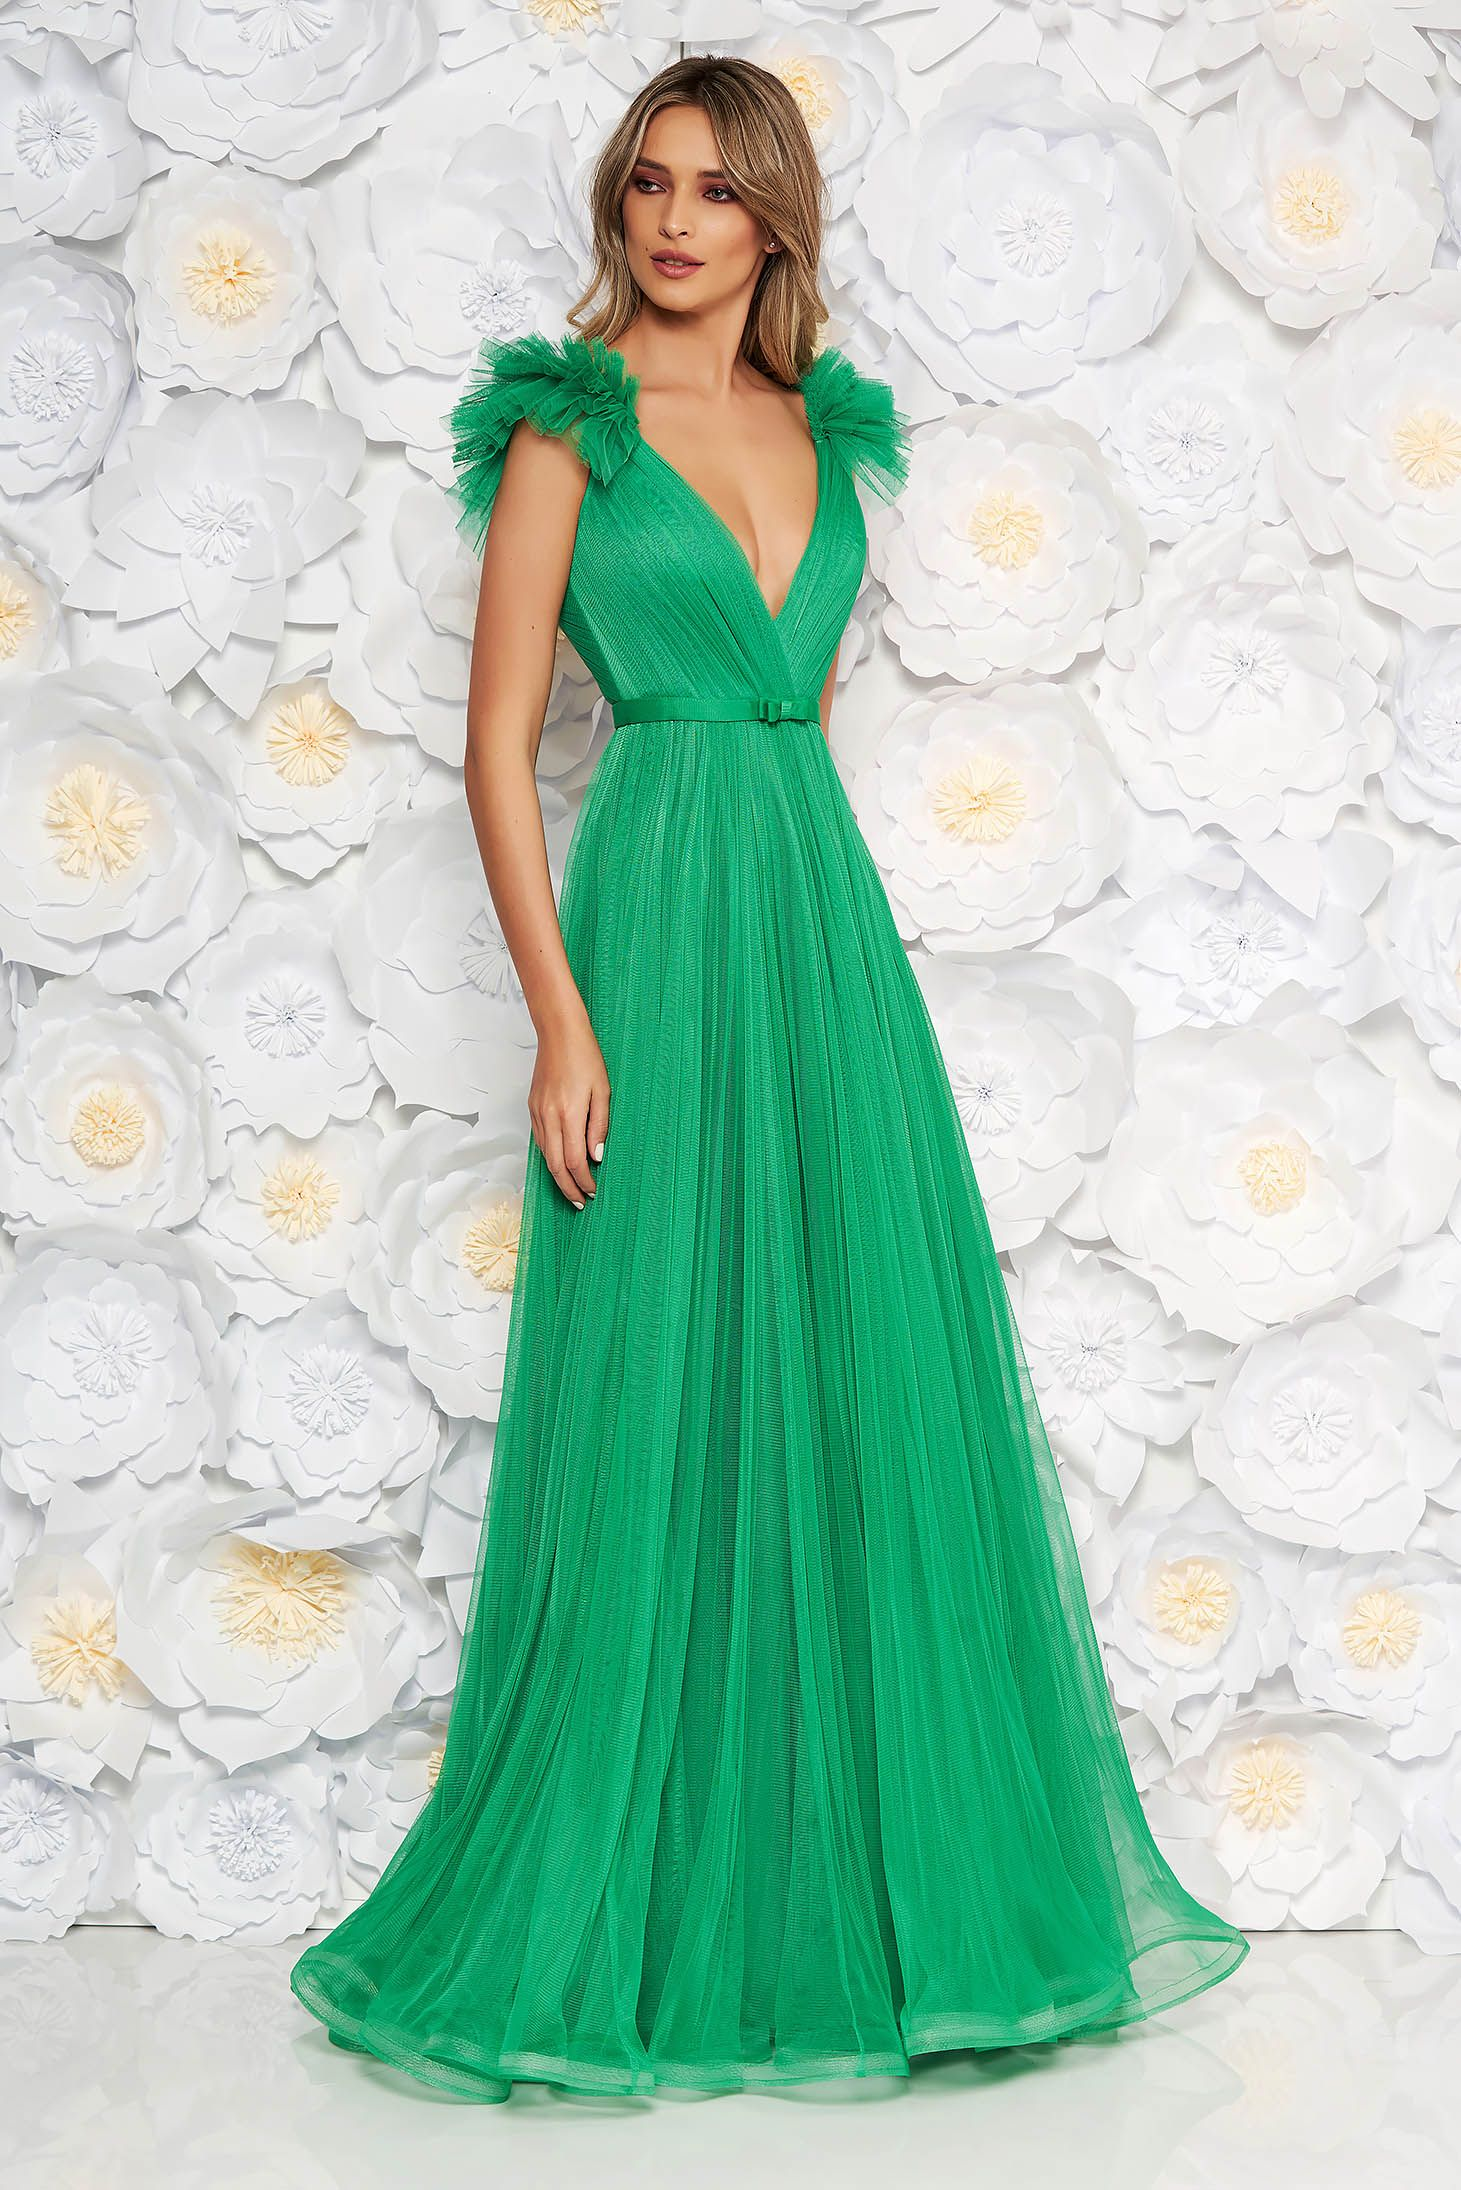 42f412692 Ana Radu lightgreen luxurious dress from tulle with inside lining with deep  cleavage with push-